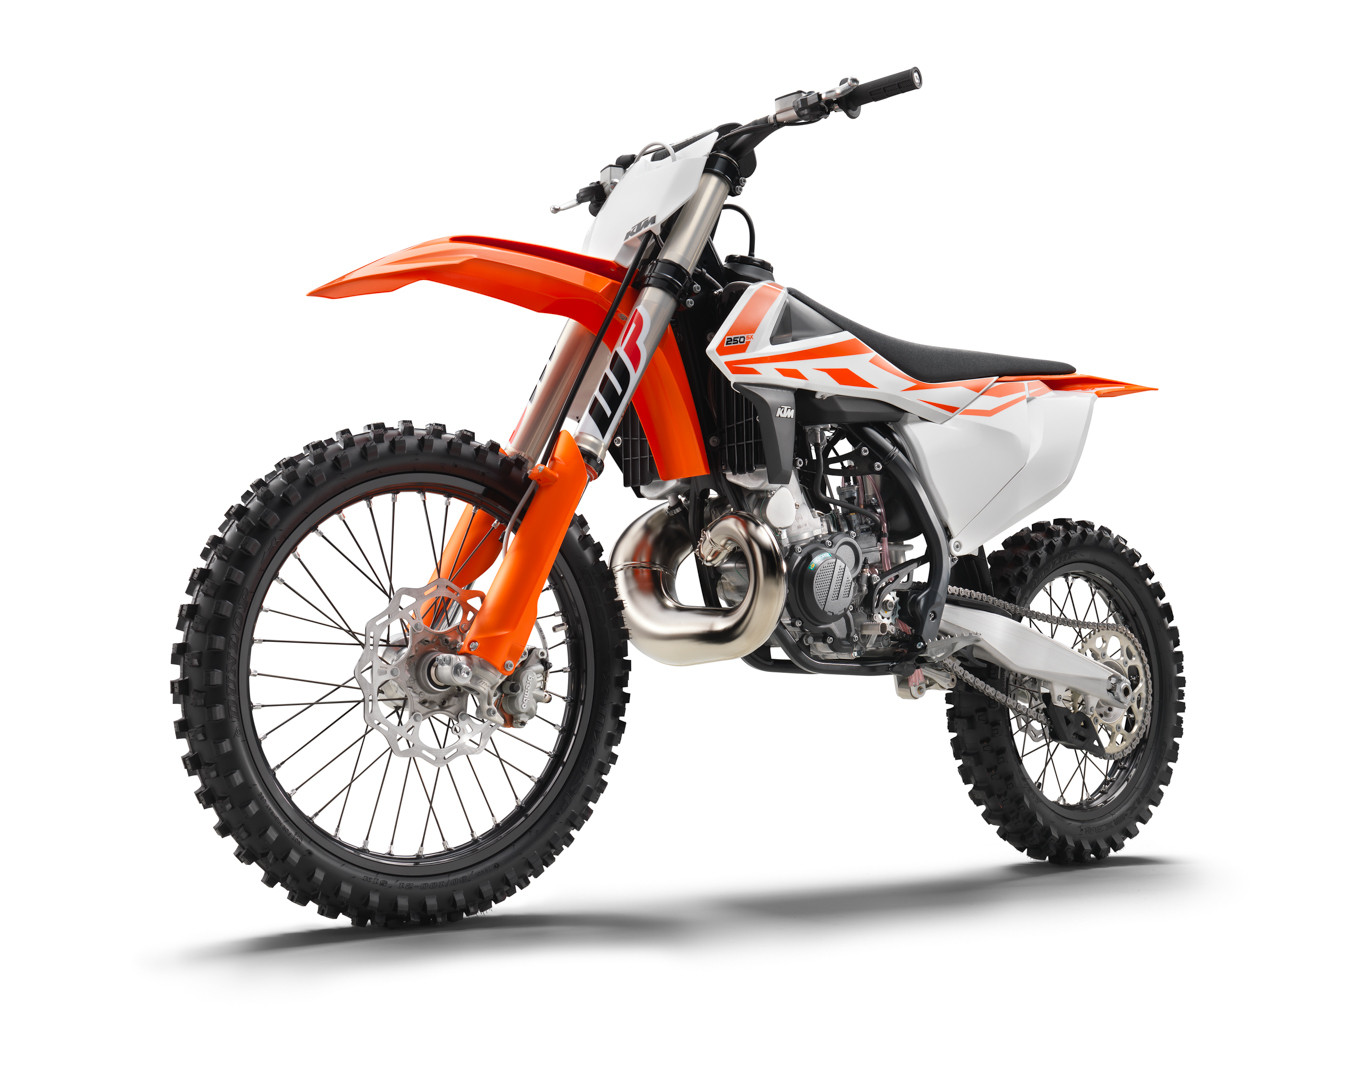 2017 ktm 250 sx first look 2017 ktm motocross and cross country line motocross pictures. Black Bedroom Furniture Sets. Home Design Ideas